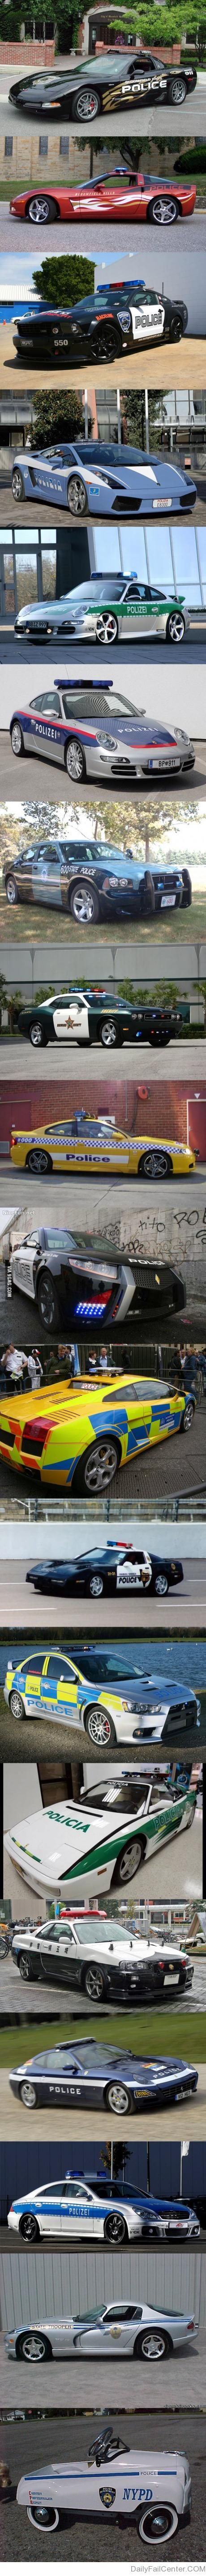 Police cars all over the world